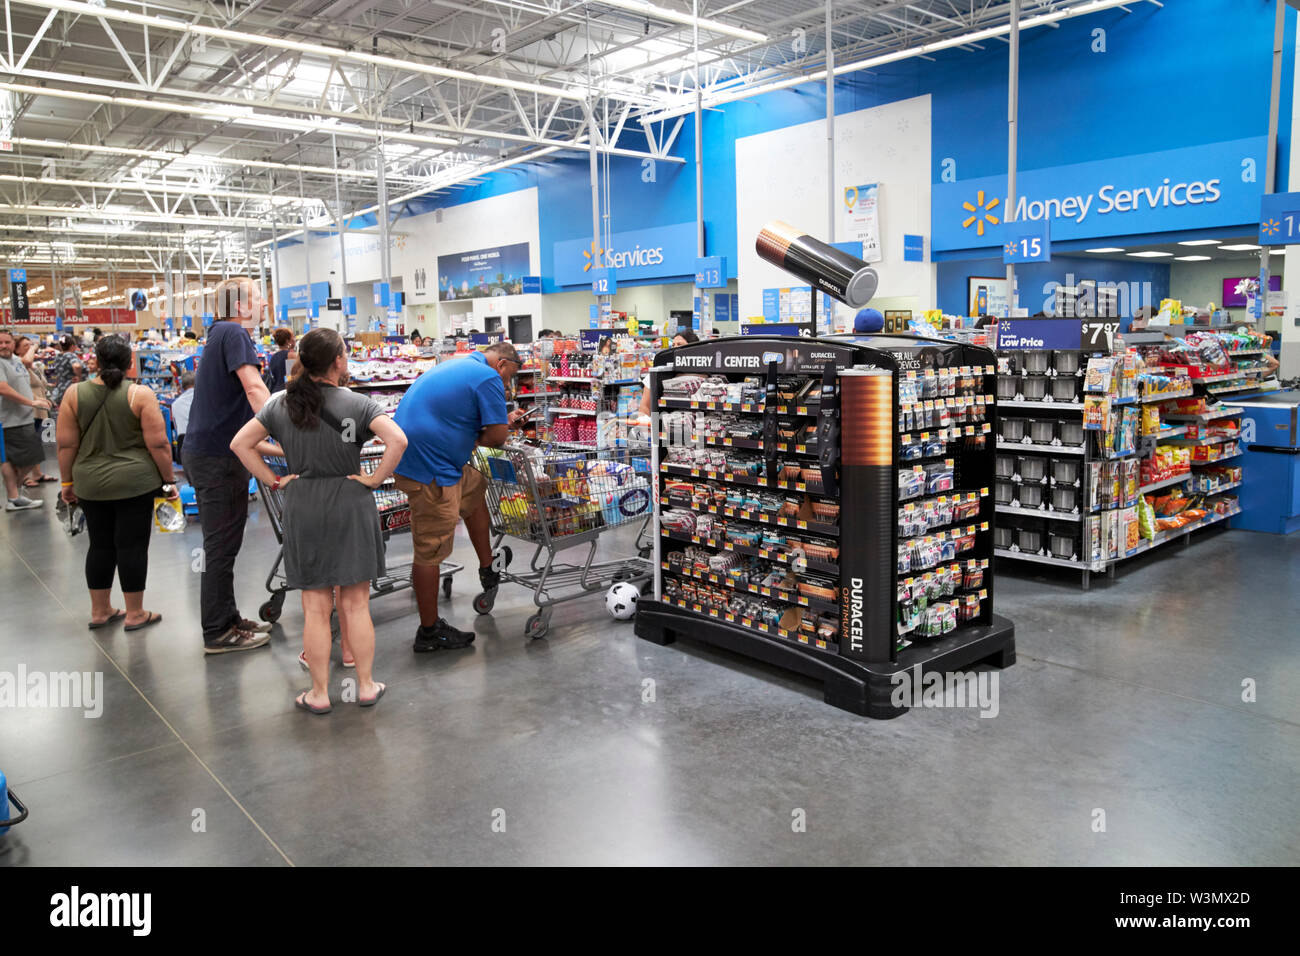 Customers Wait In Line At Busy Walmart Checkouts In A Supercenter Store In Orlando Florida Usa Stock Photo Alamy